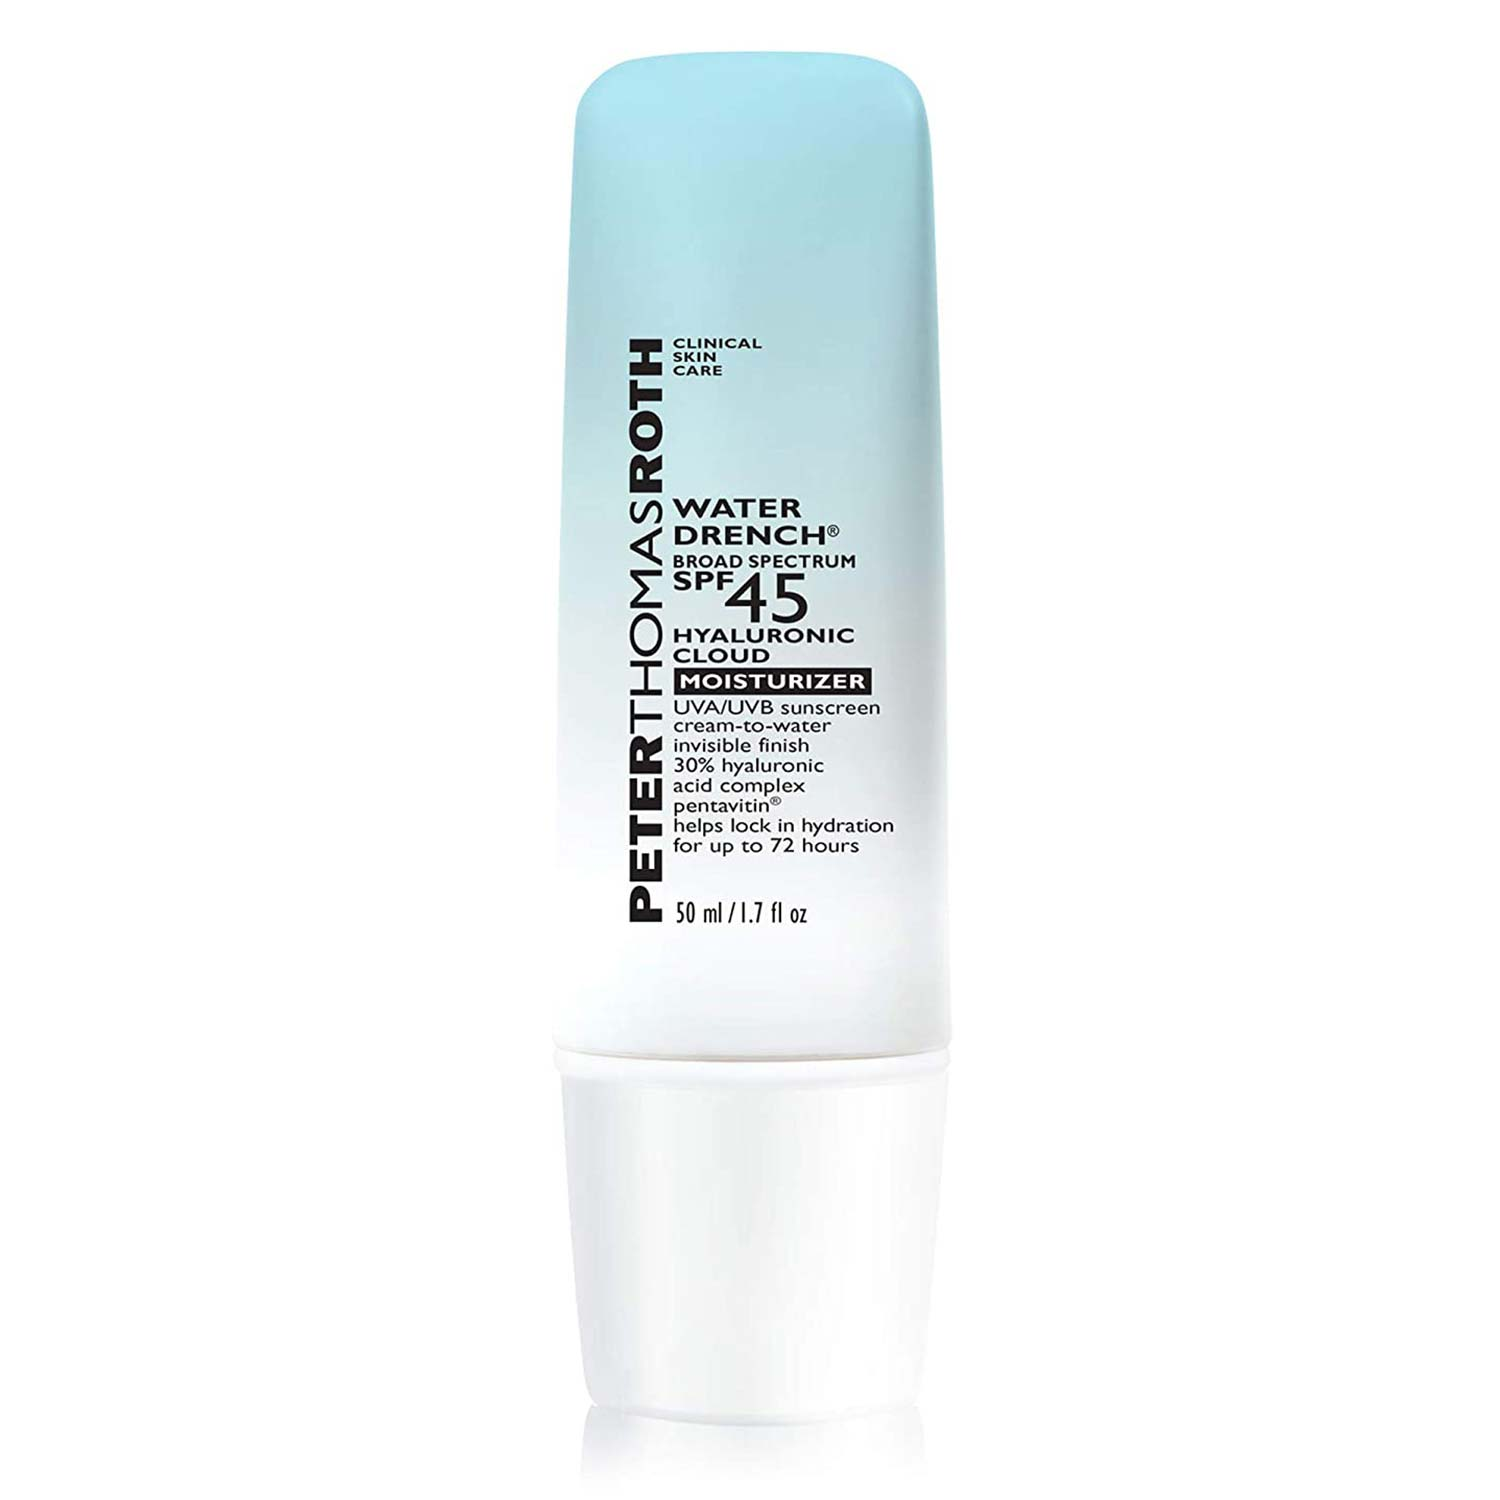 Peter Thomas Roth Water Drench Broad Spectrum